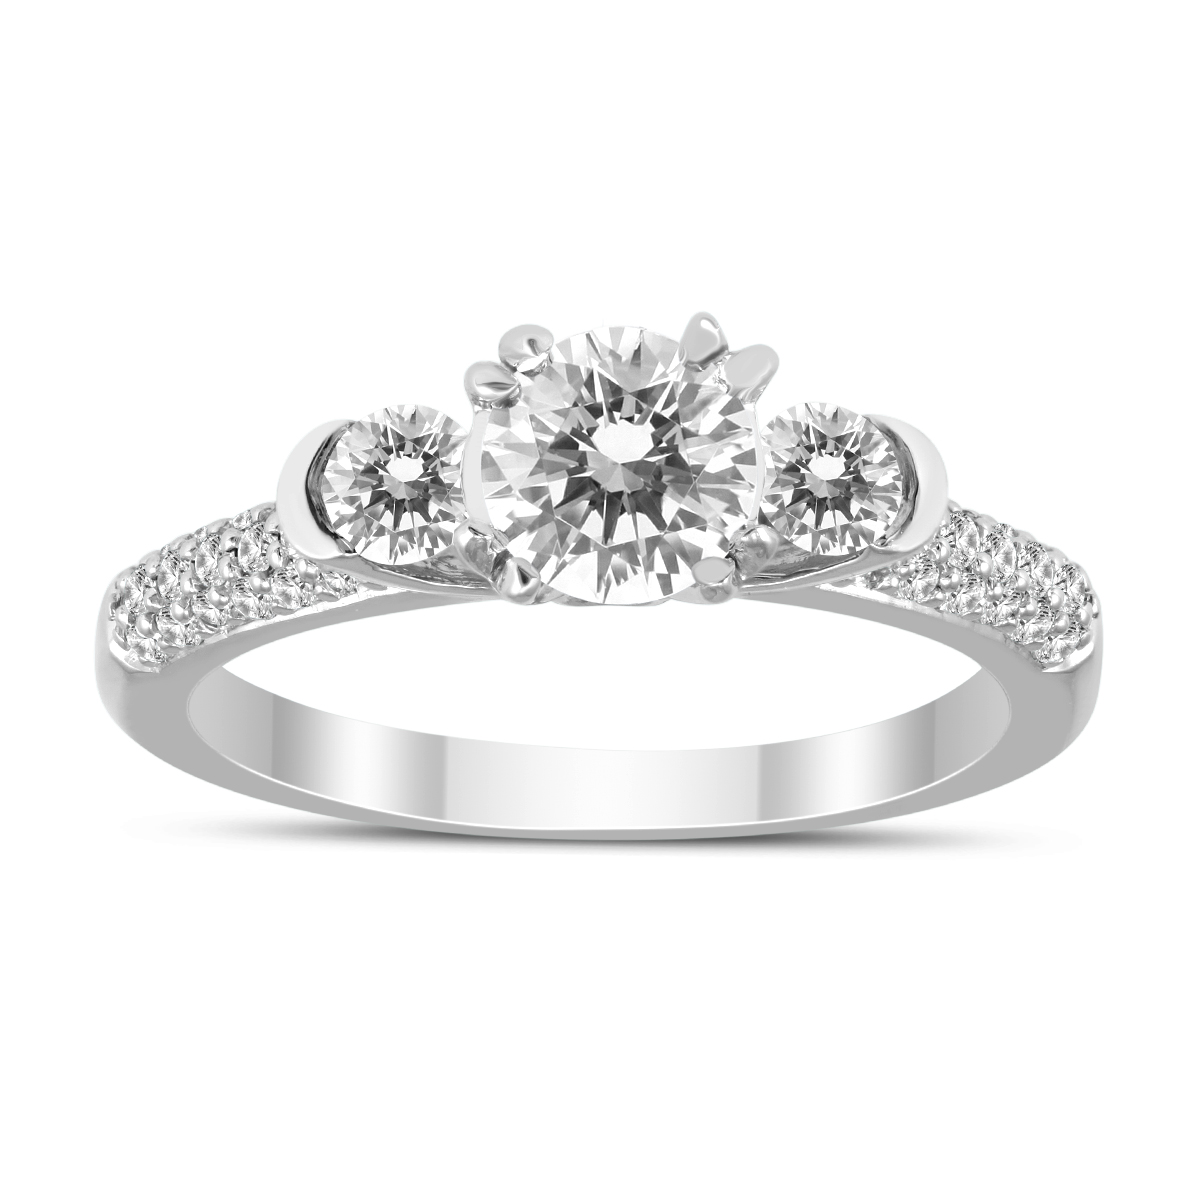 7/8 Carat TW Diamond Three Stone Ring